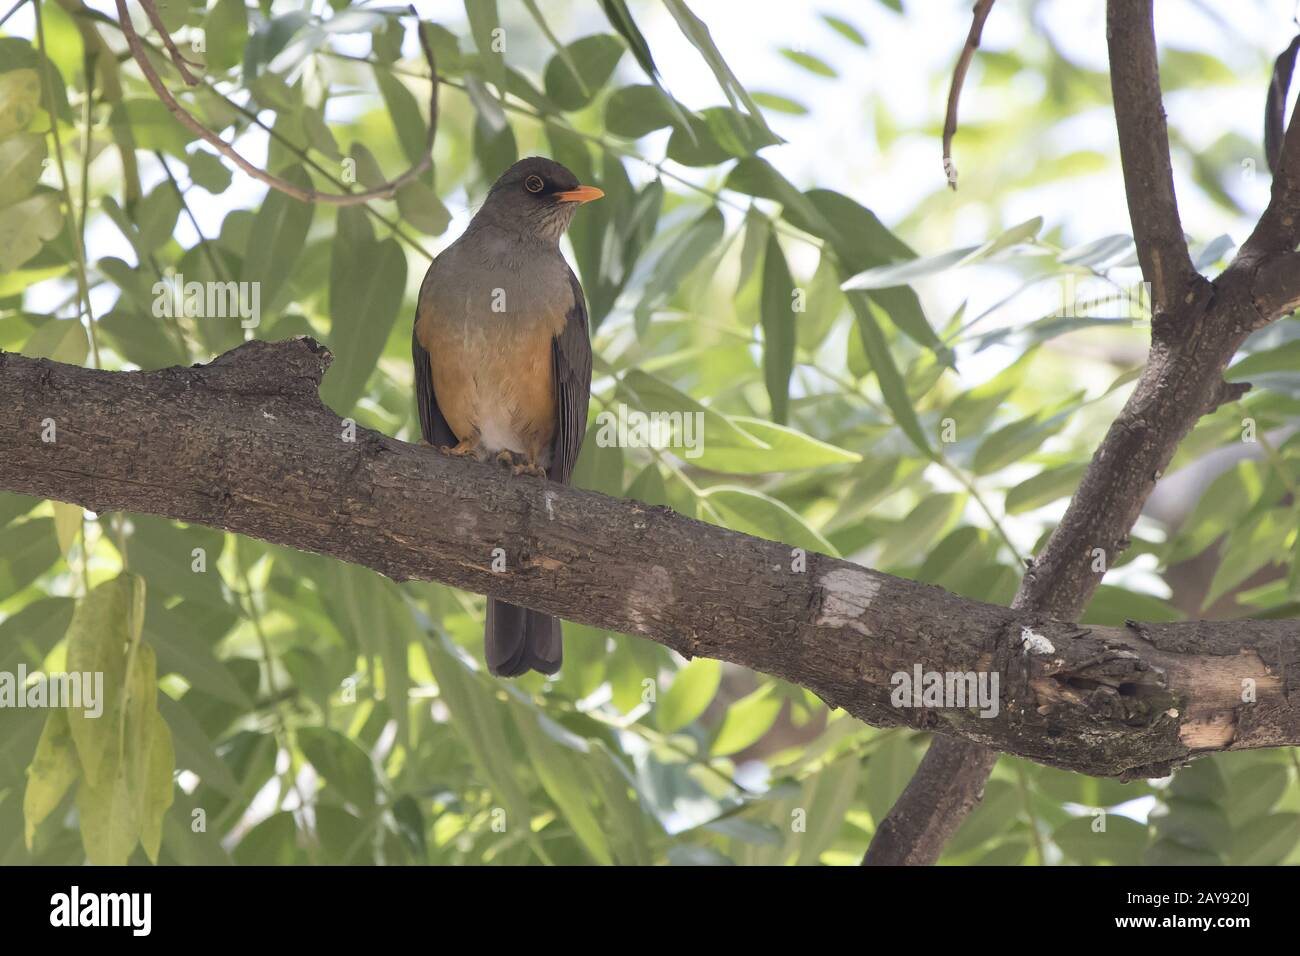 Olive thrush that sits on a tree branch in the shade of leaves on a hot African day Stock Photo